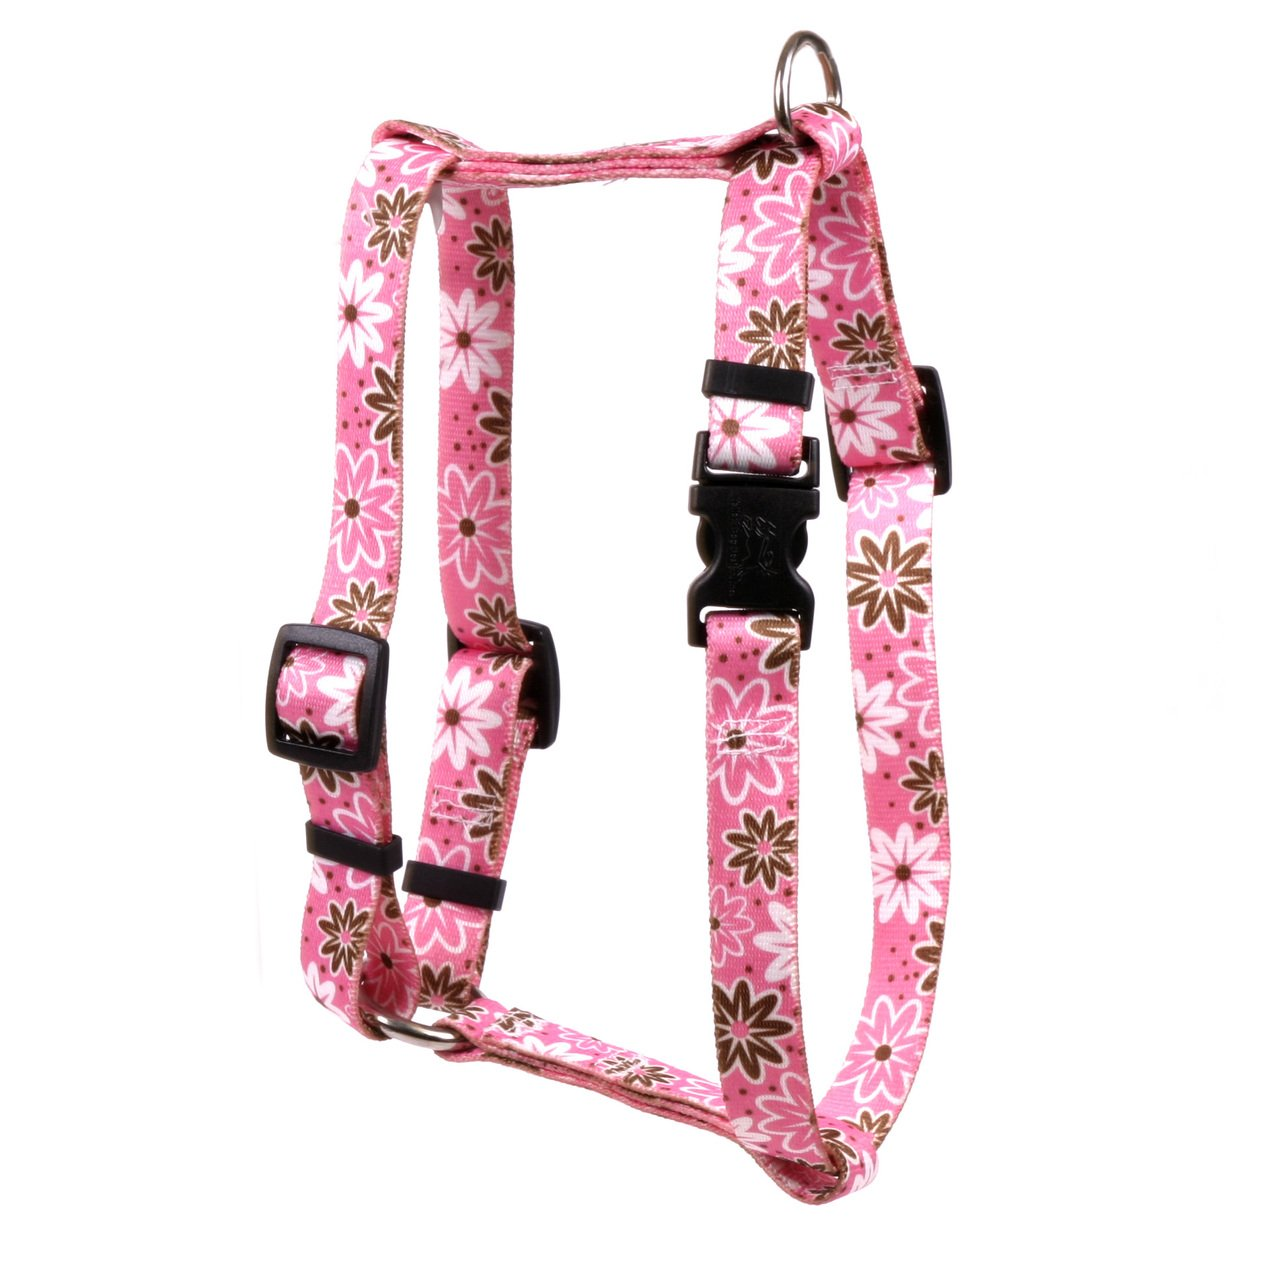 Yellow Dog Design Daisy Chain Pink Roman Style H Dog Harness Fits Chest of 8 to 14'', X-Small/3/8